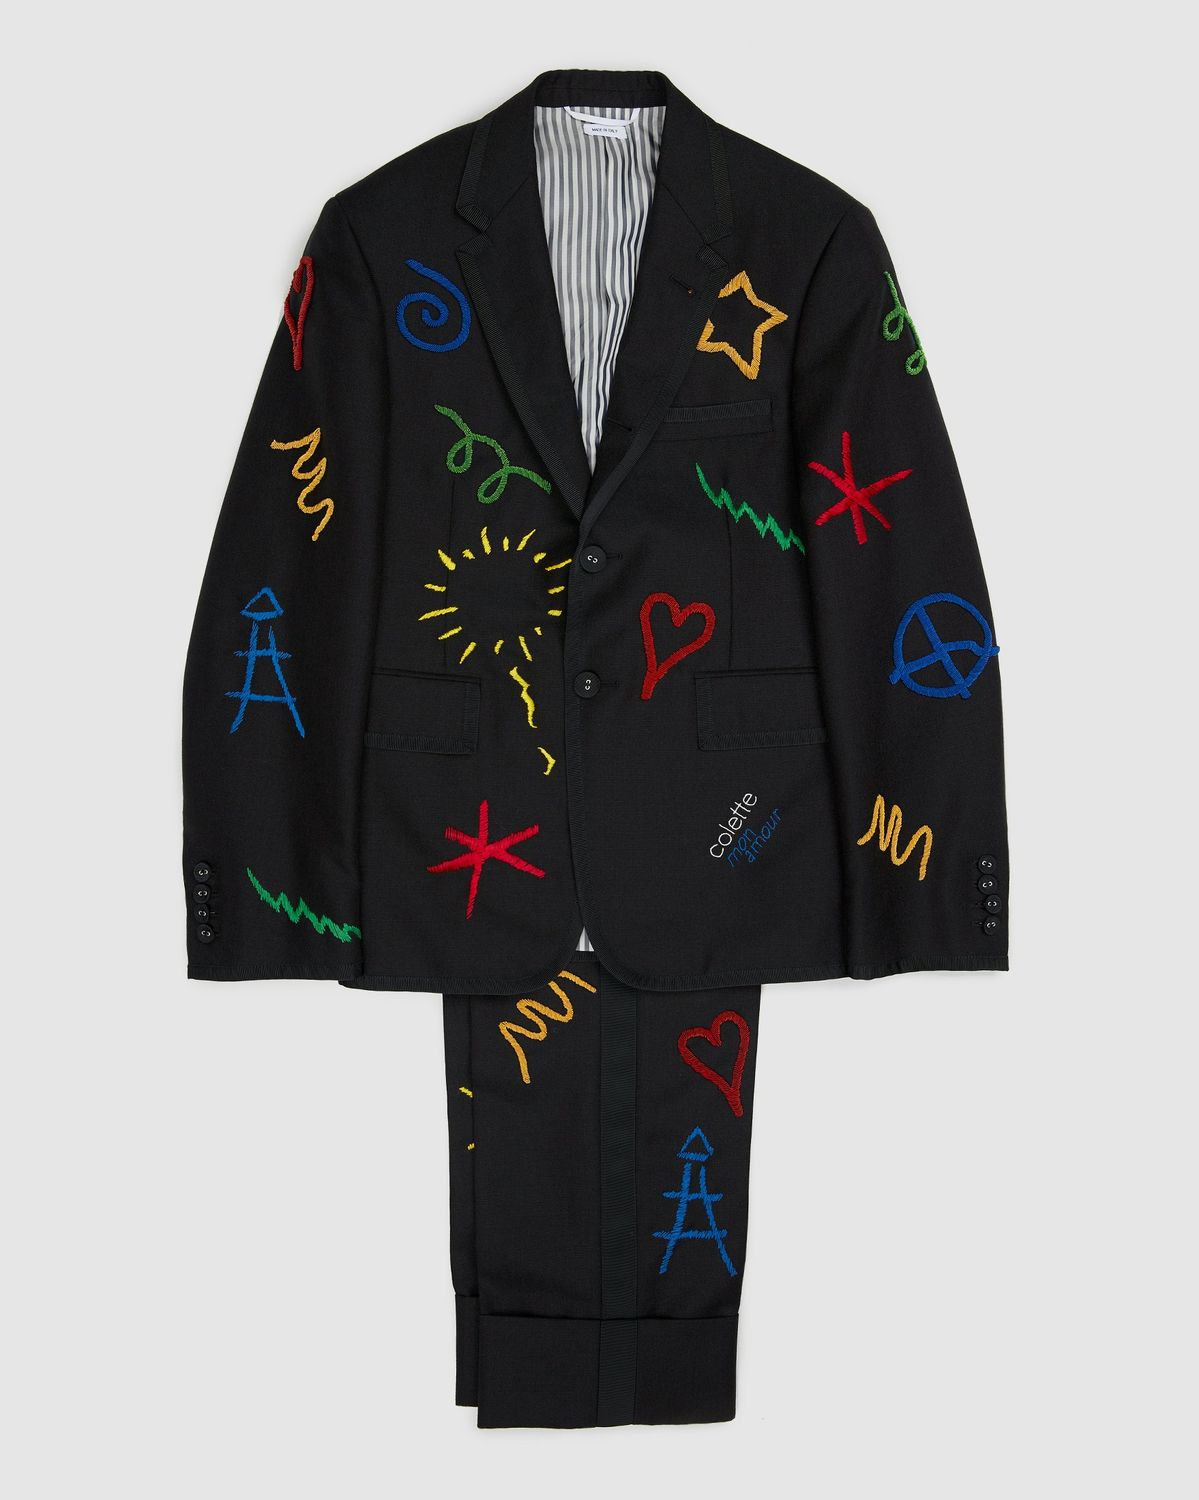 Colette Mon Amour x Thom Browne — Black Embroidered Tux Suit - Image 1